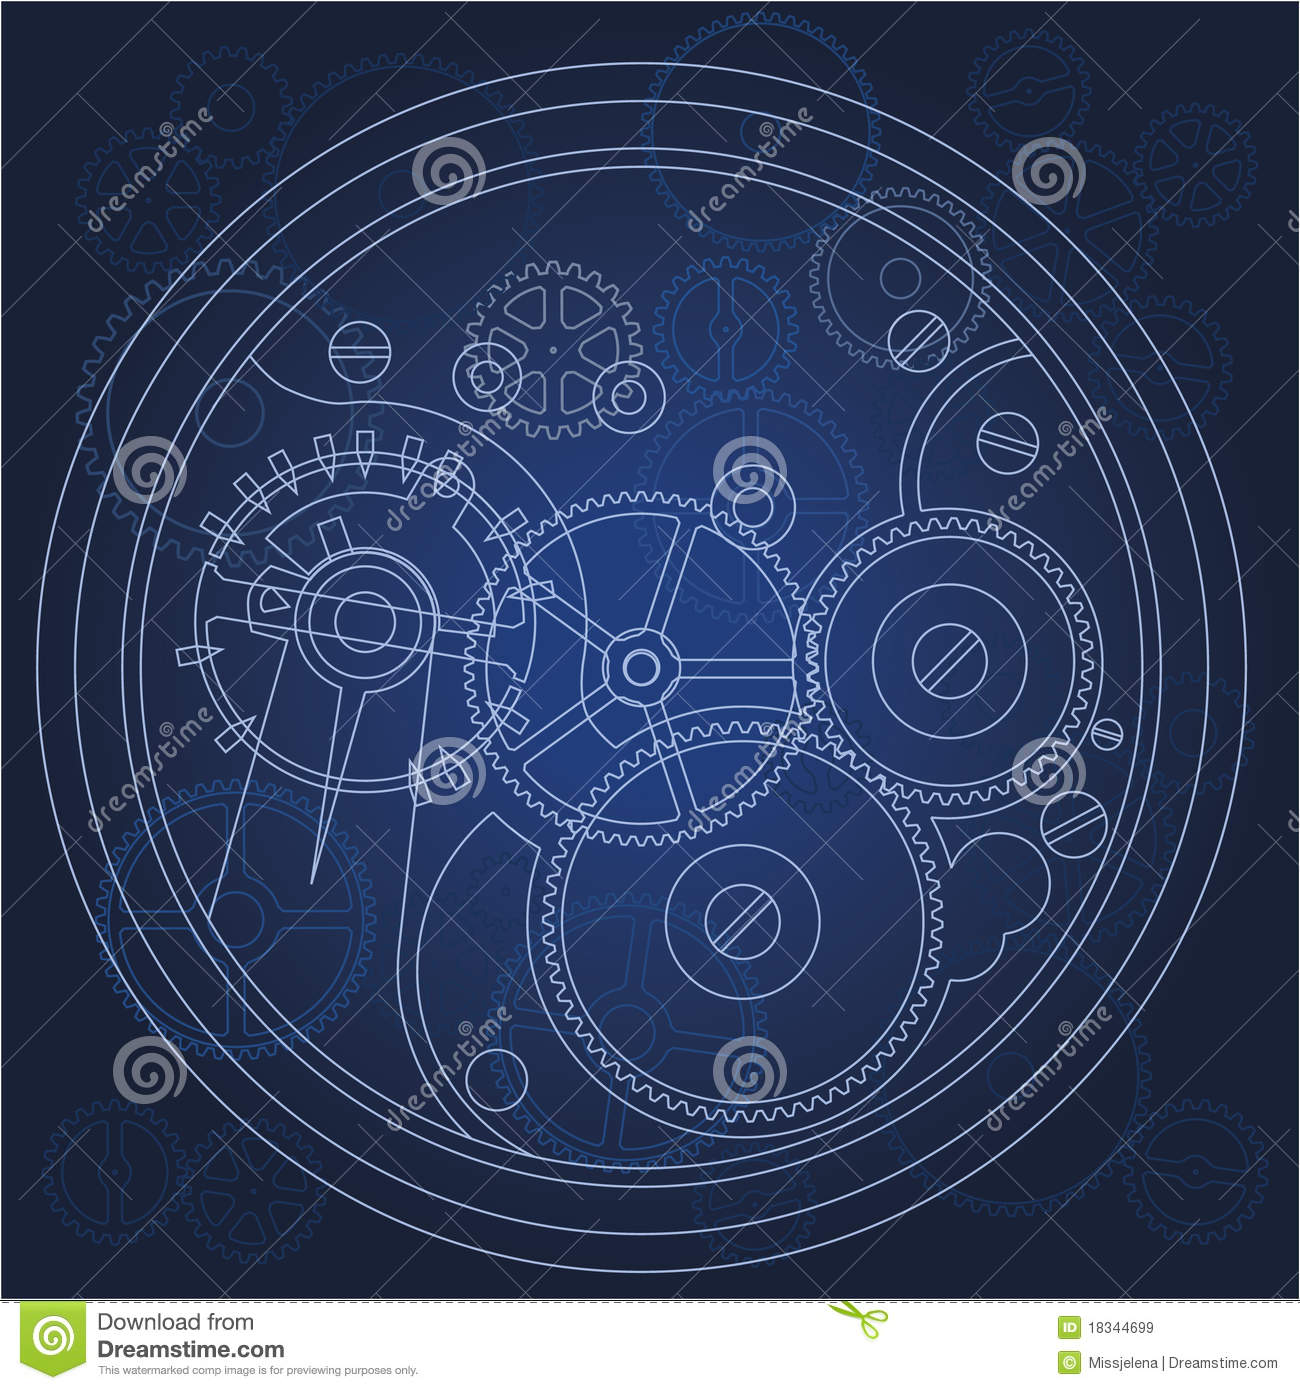 Bond In Motion >> Gears blueprint stock vector. Image of machinery, machine - 18344699